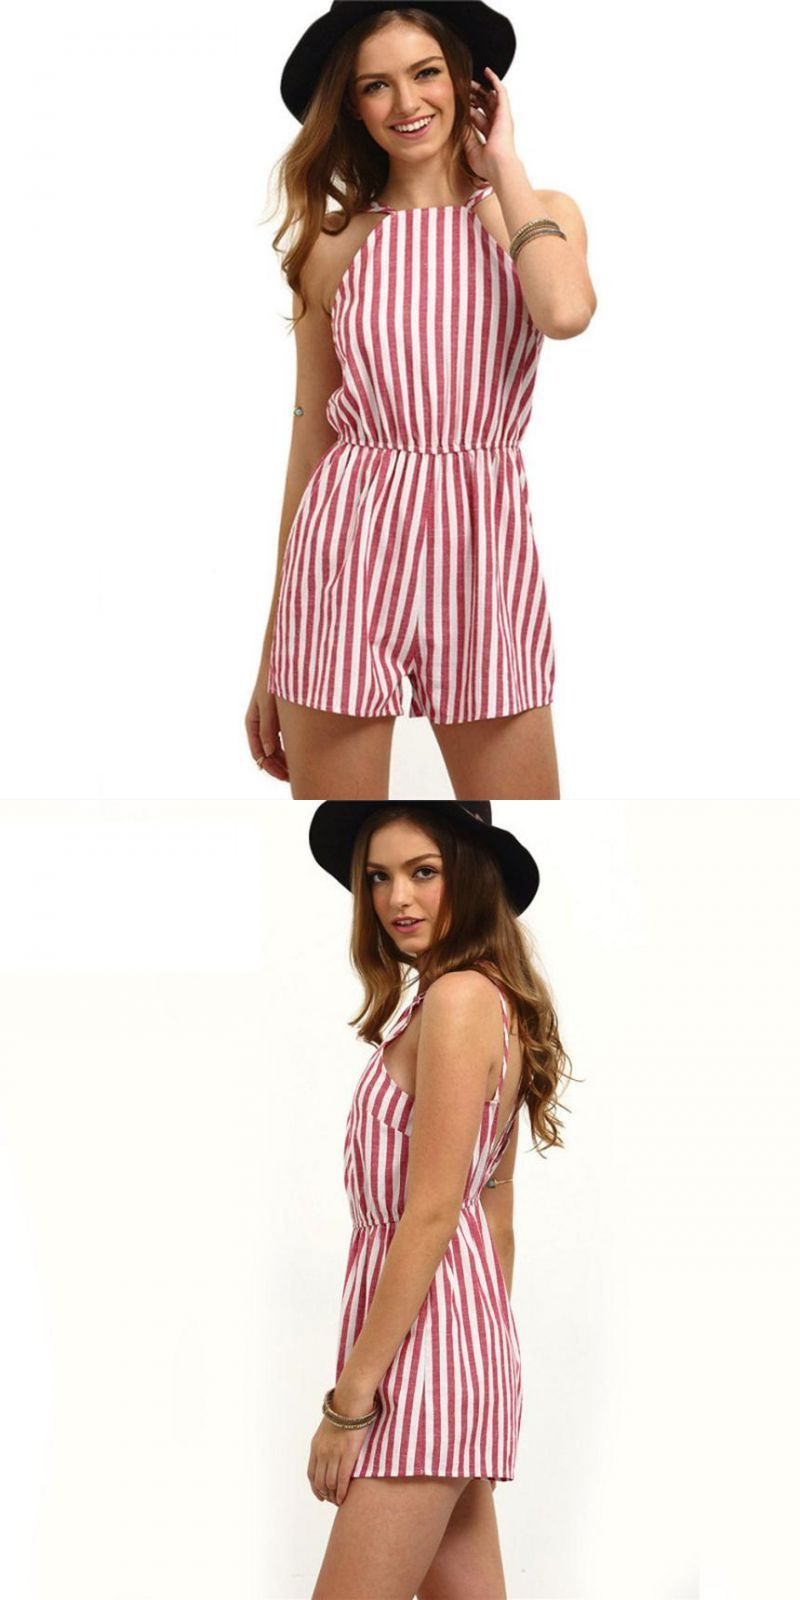 426ecbf8f47 Elegant ladies striped jumpsuit women summer sleeveless beach sexy rompers  womens casual bodycon halter jumpsuits short  yl5  casual  striped   playsuits ...